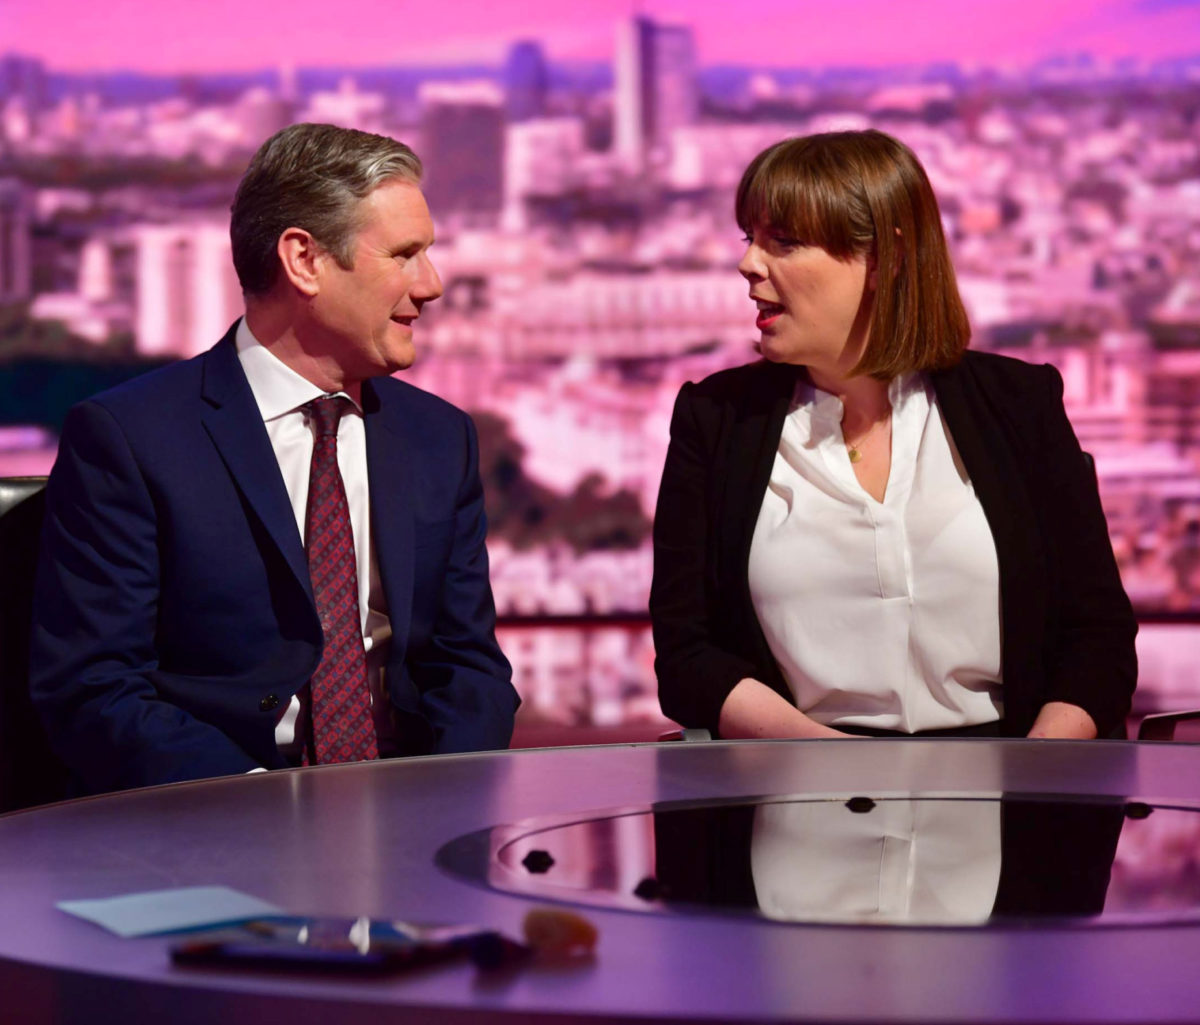 News diary 13-19 January: Stormont devolution talks deadline and Labour leader hopefuls face first hurdle